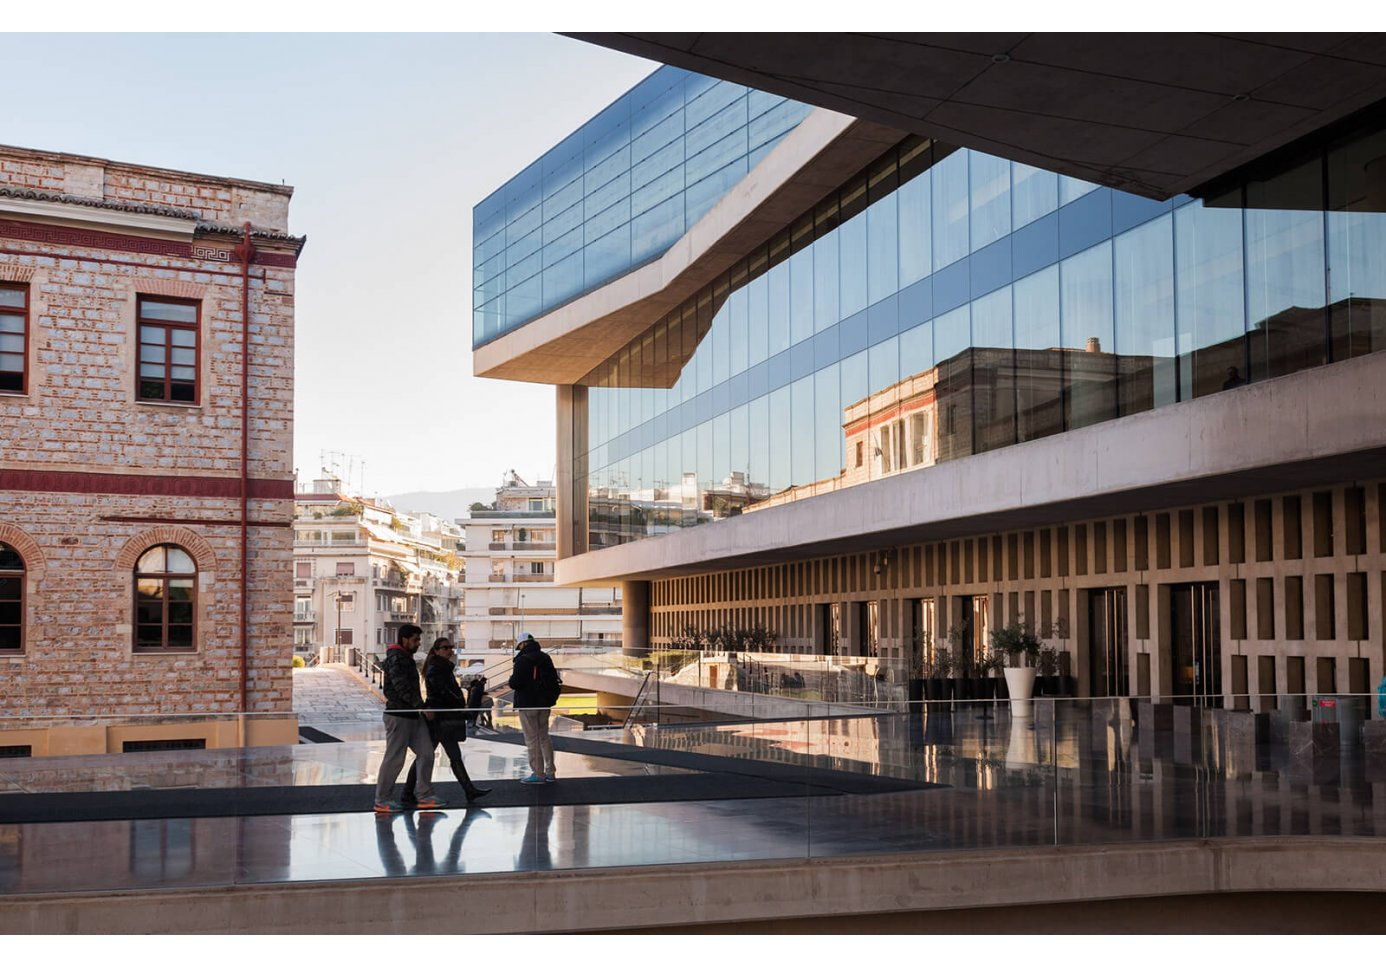 people outside the Acropolis Museum in Athens